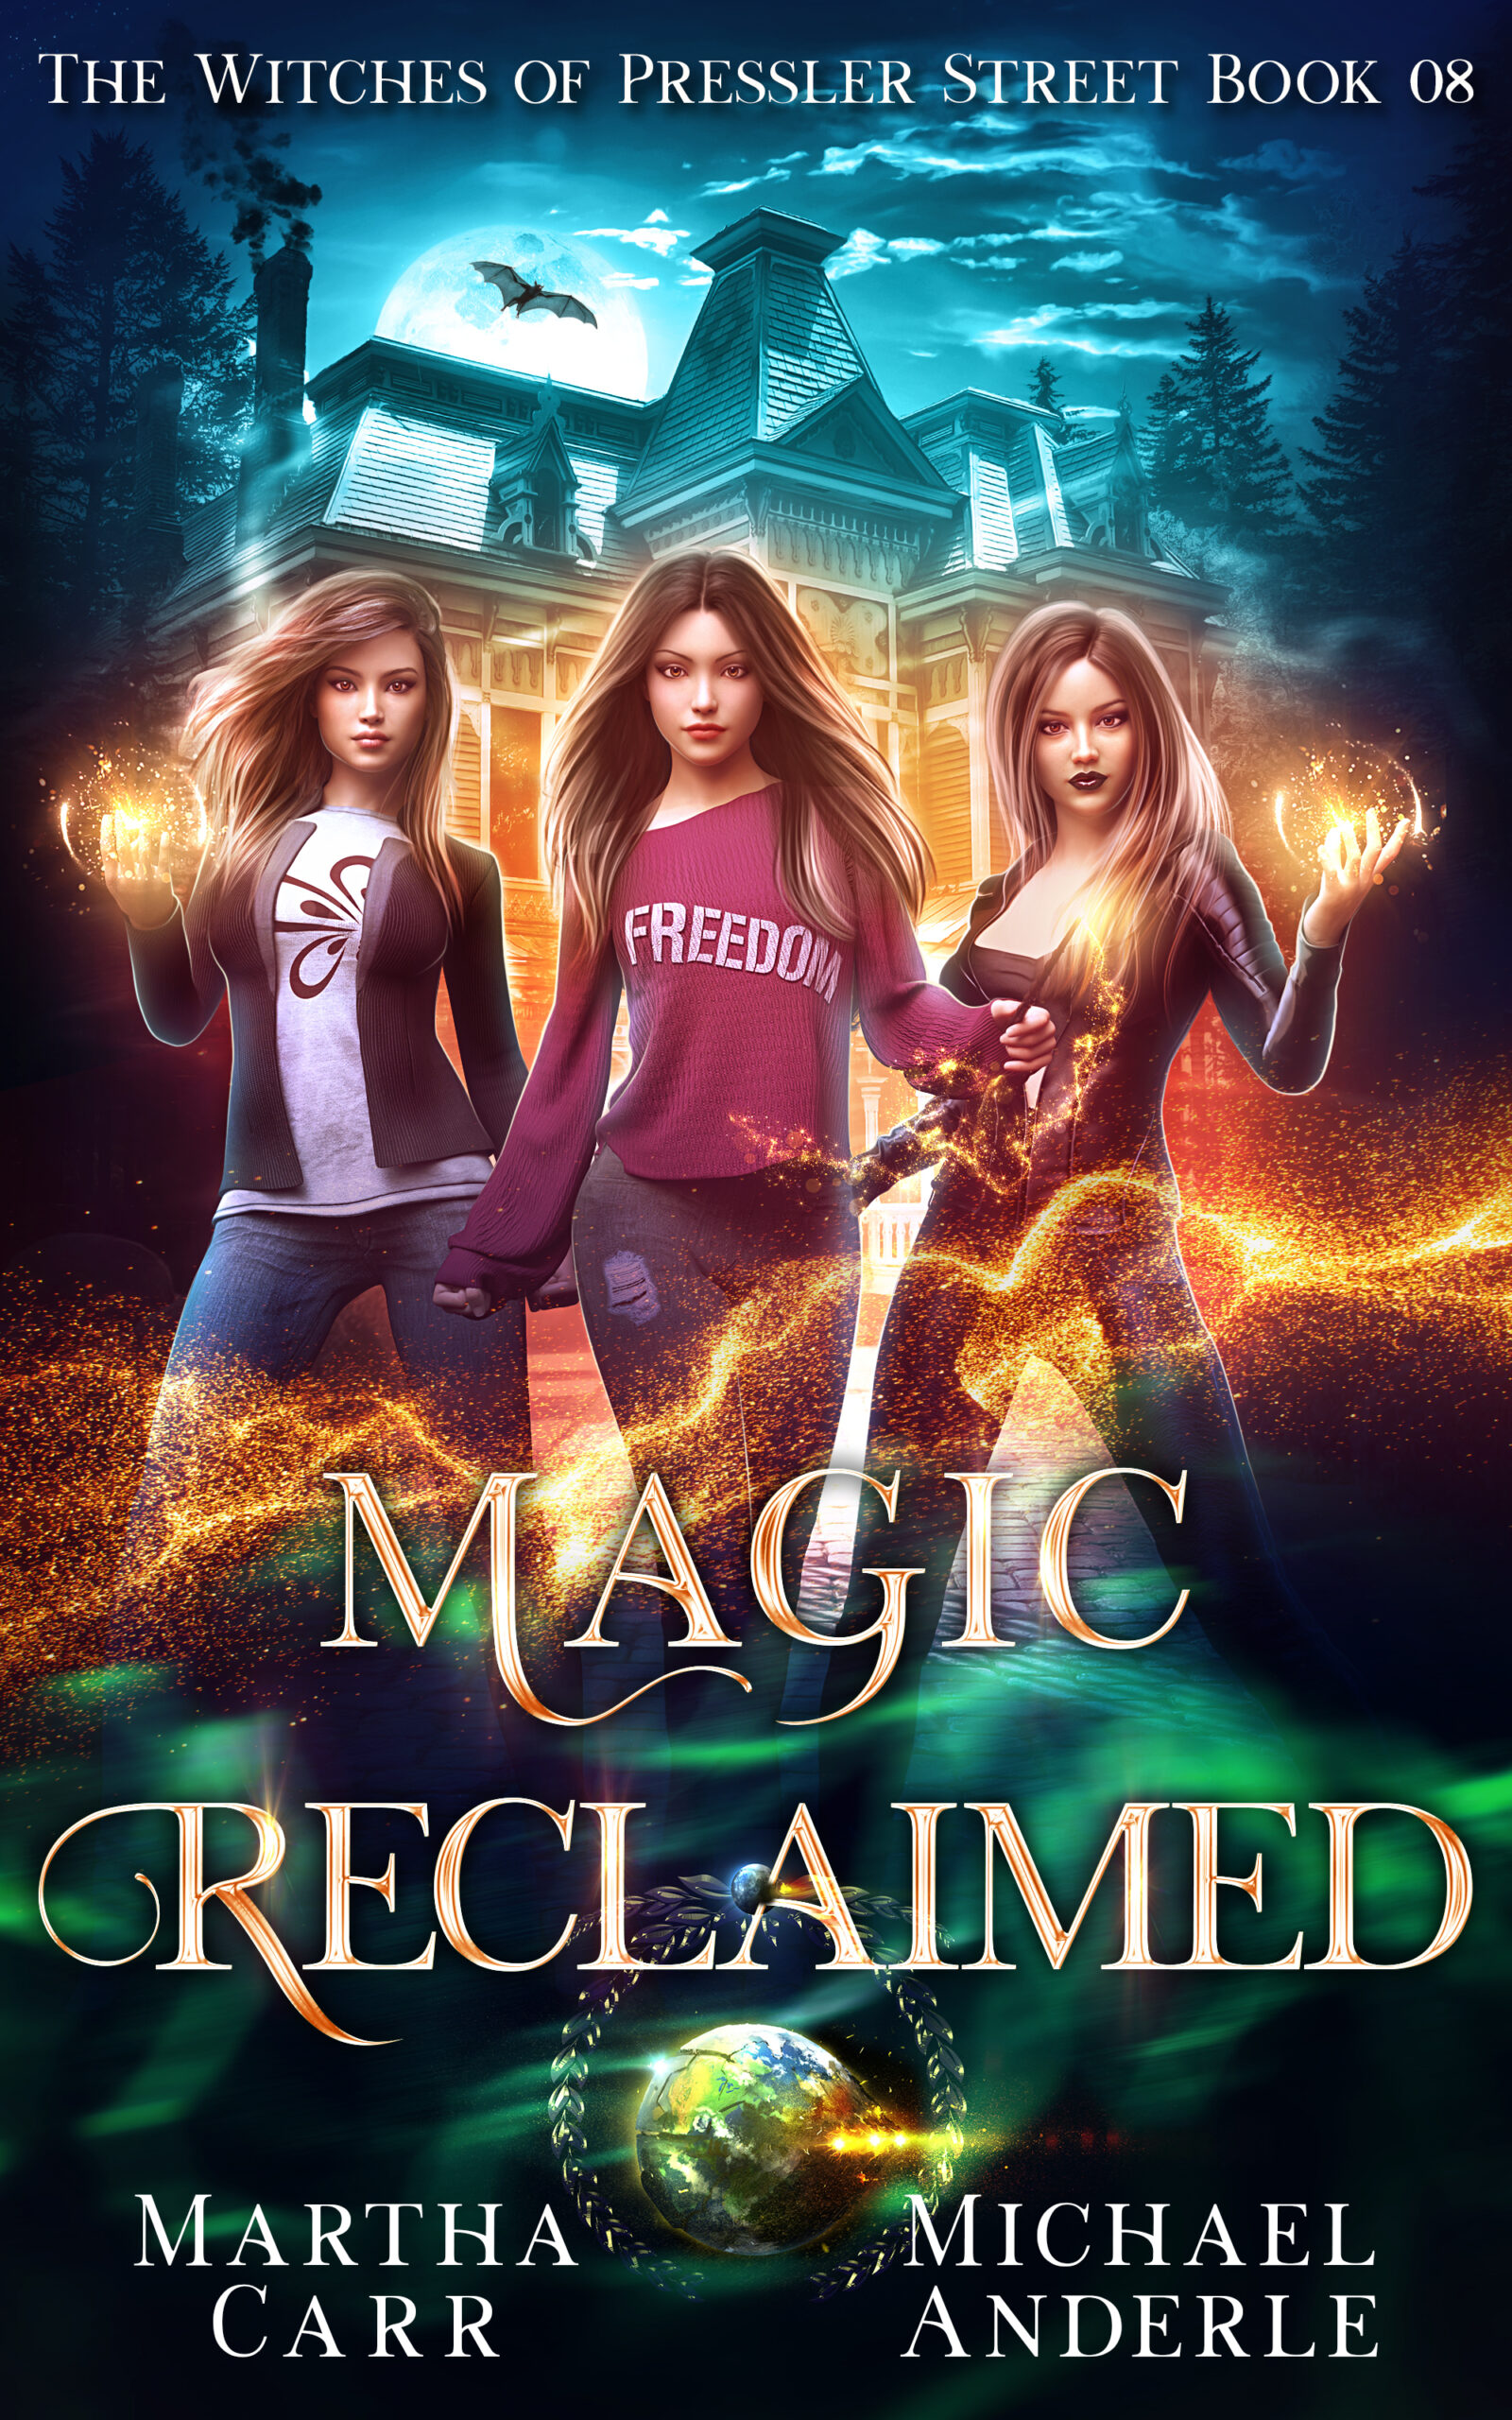 The Witches of Pressler Street Book 8: Magic Reclaimed